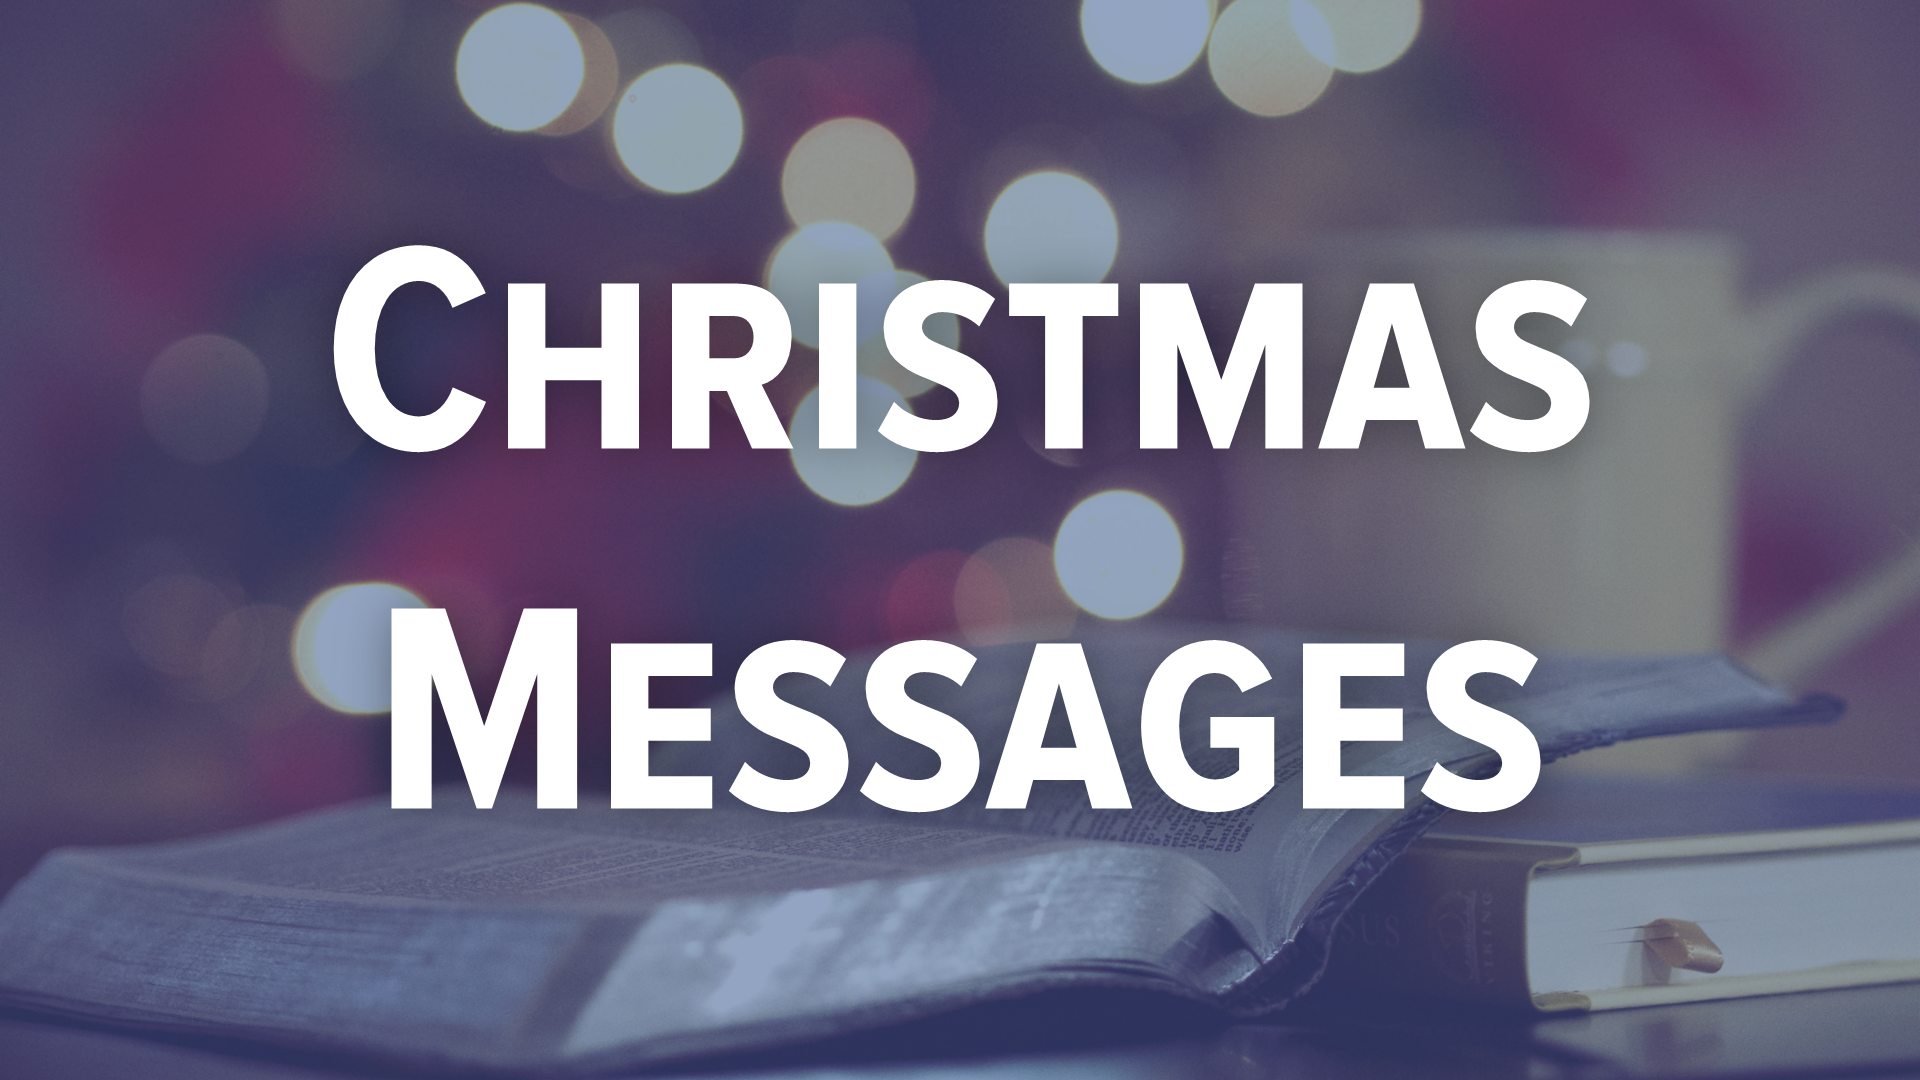 Christmas Messages.png